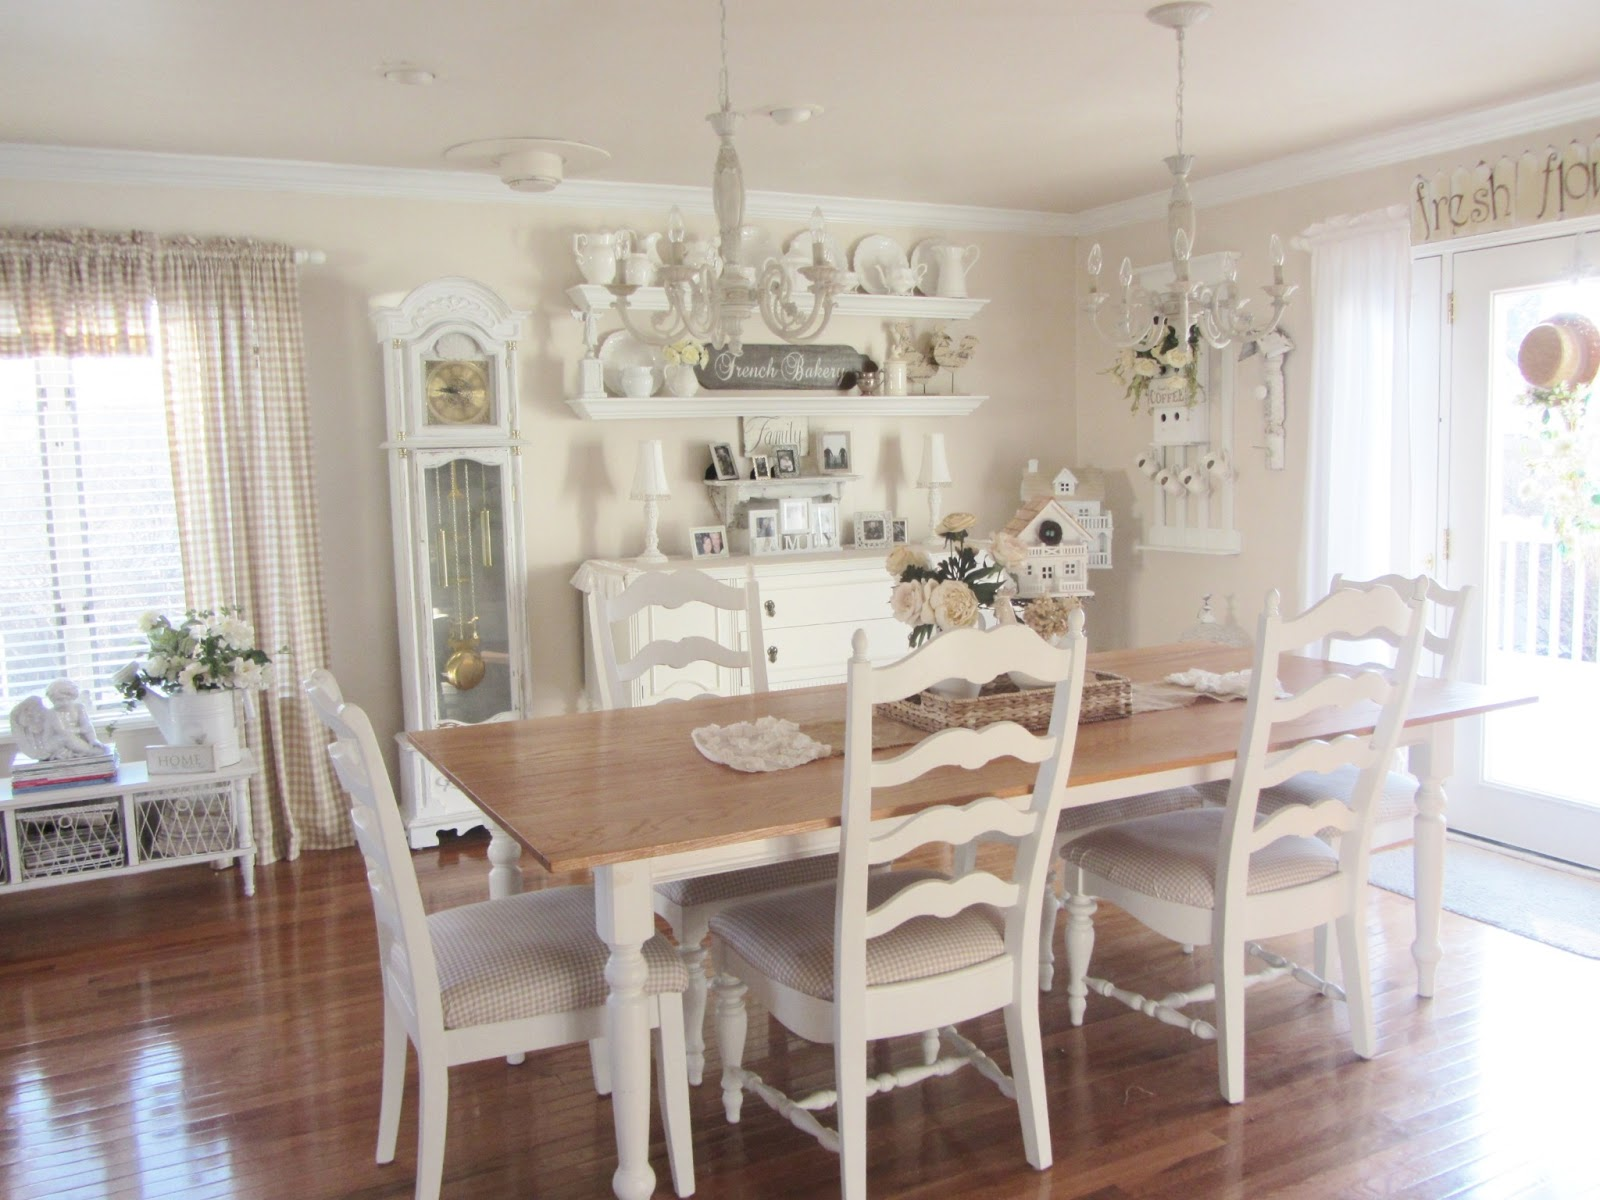 White Dining Room Ideas Terrys Fabrics 39 S Blog